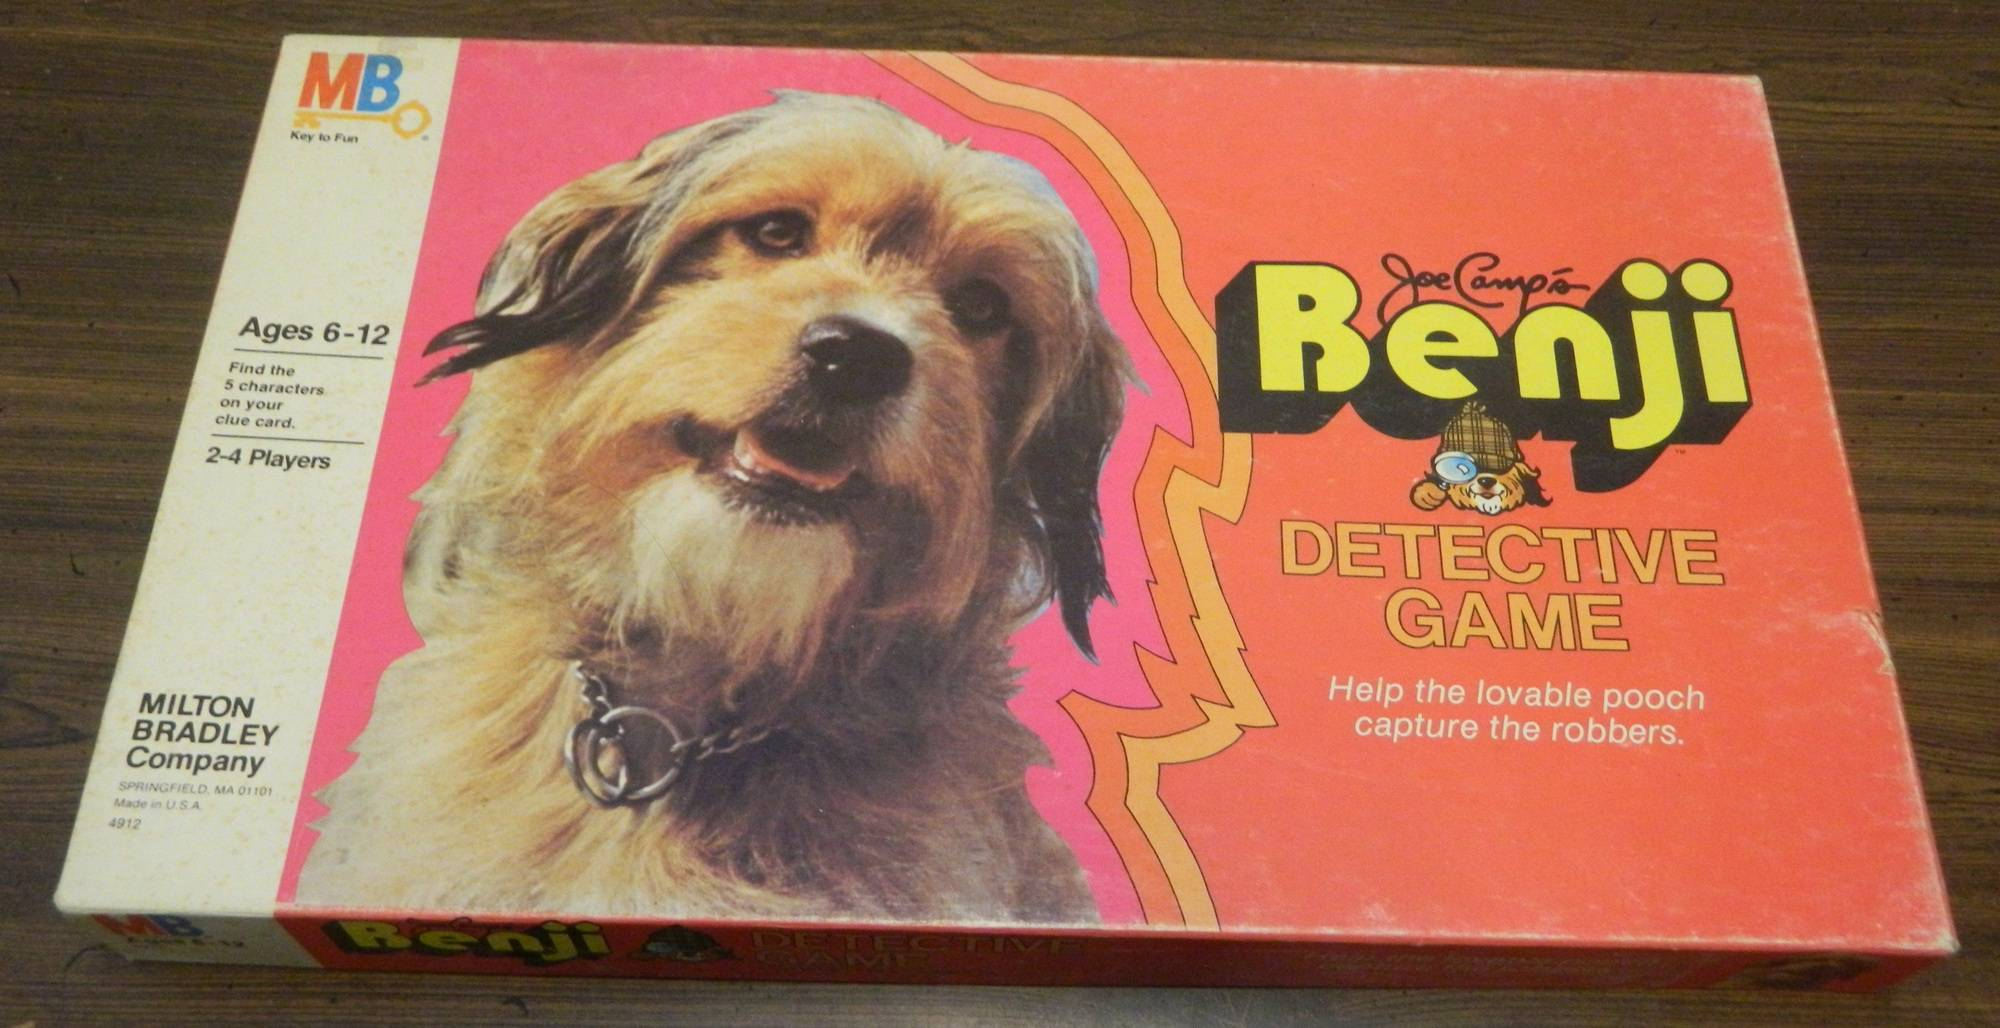 Box for the Benji Detective Game